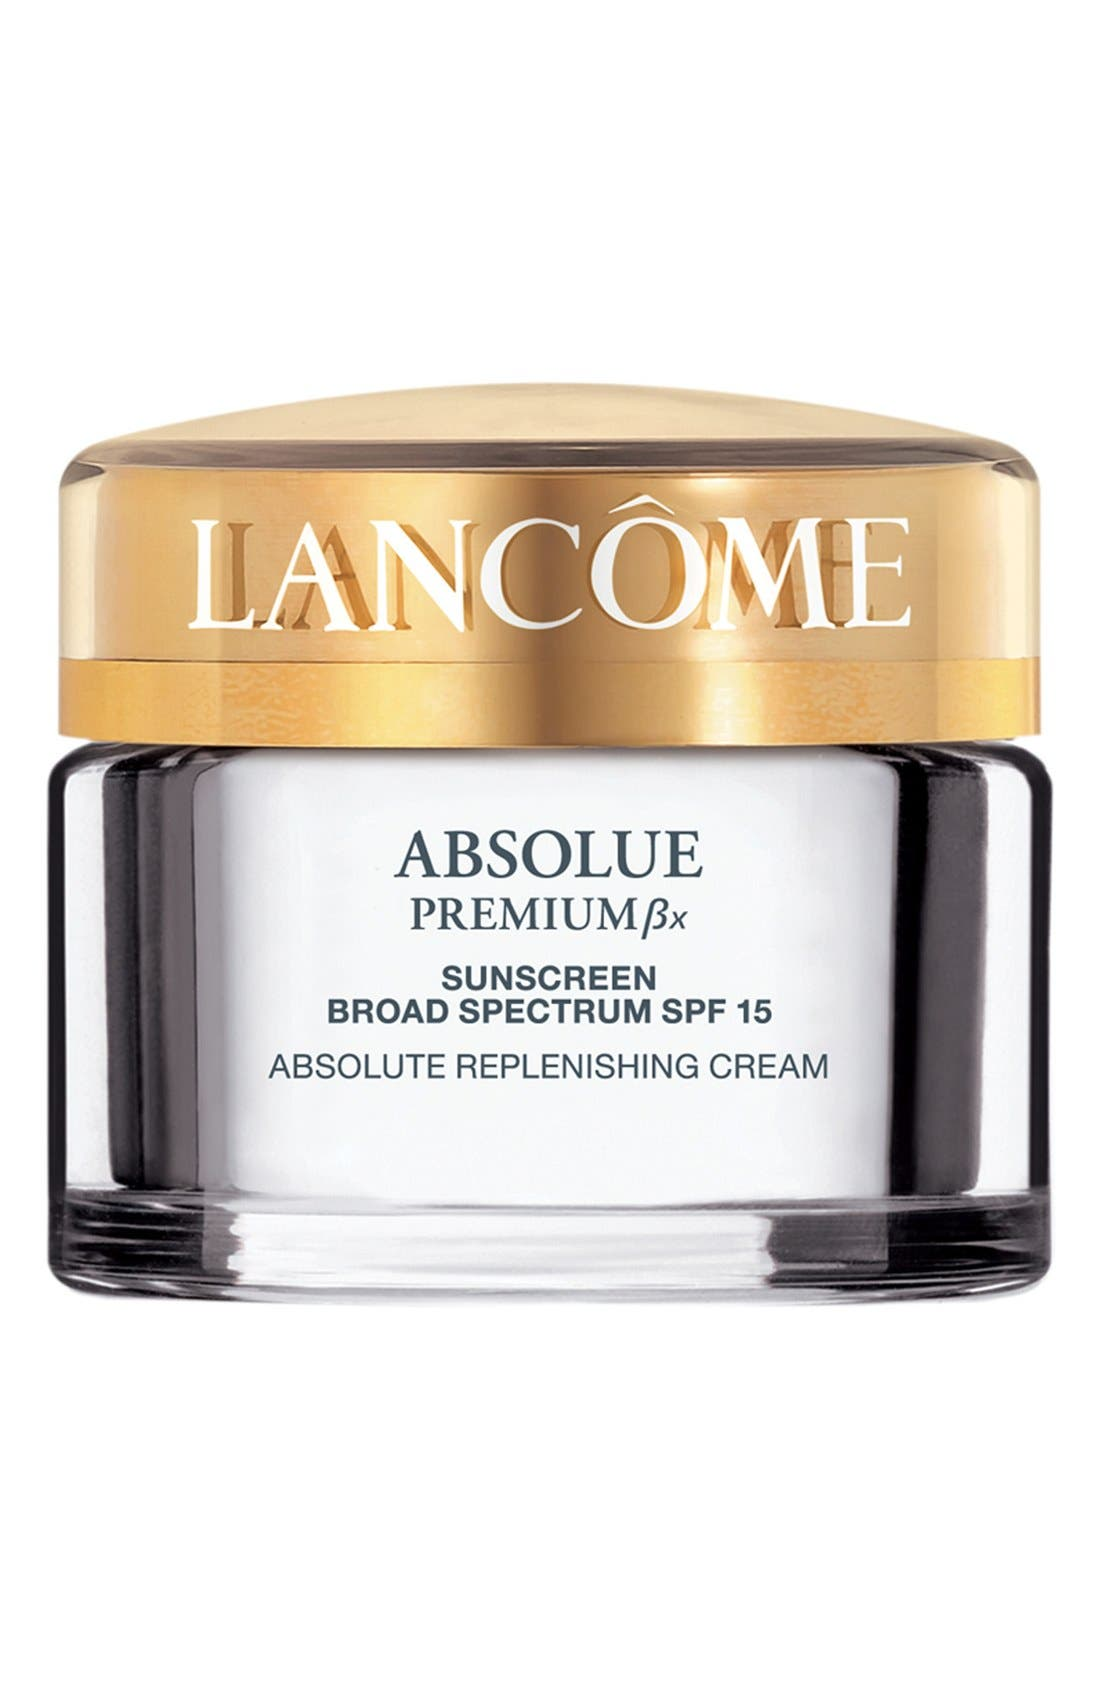 Lancôme Absolue Premium ßx Absolute Replenishing Cream SPF 15 (0.5 oz.)